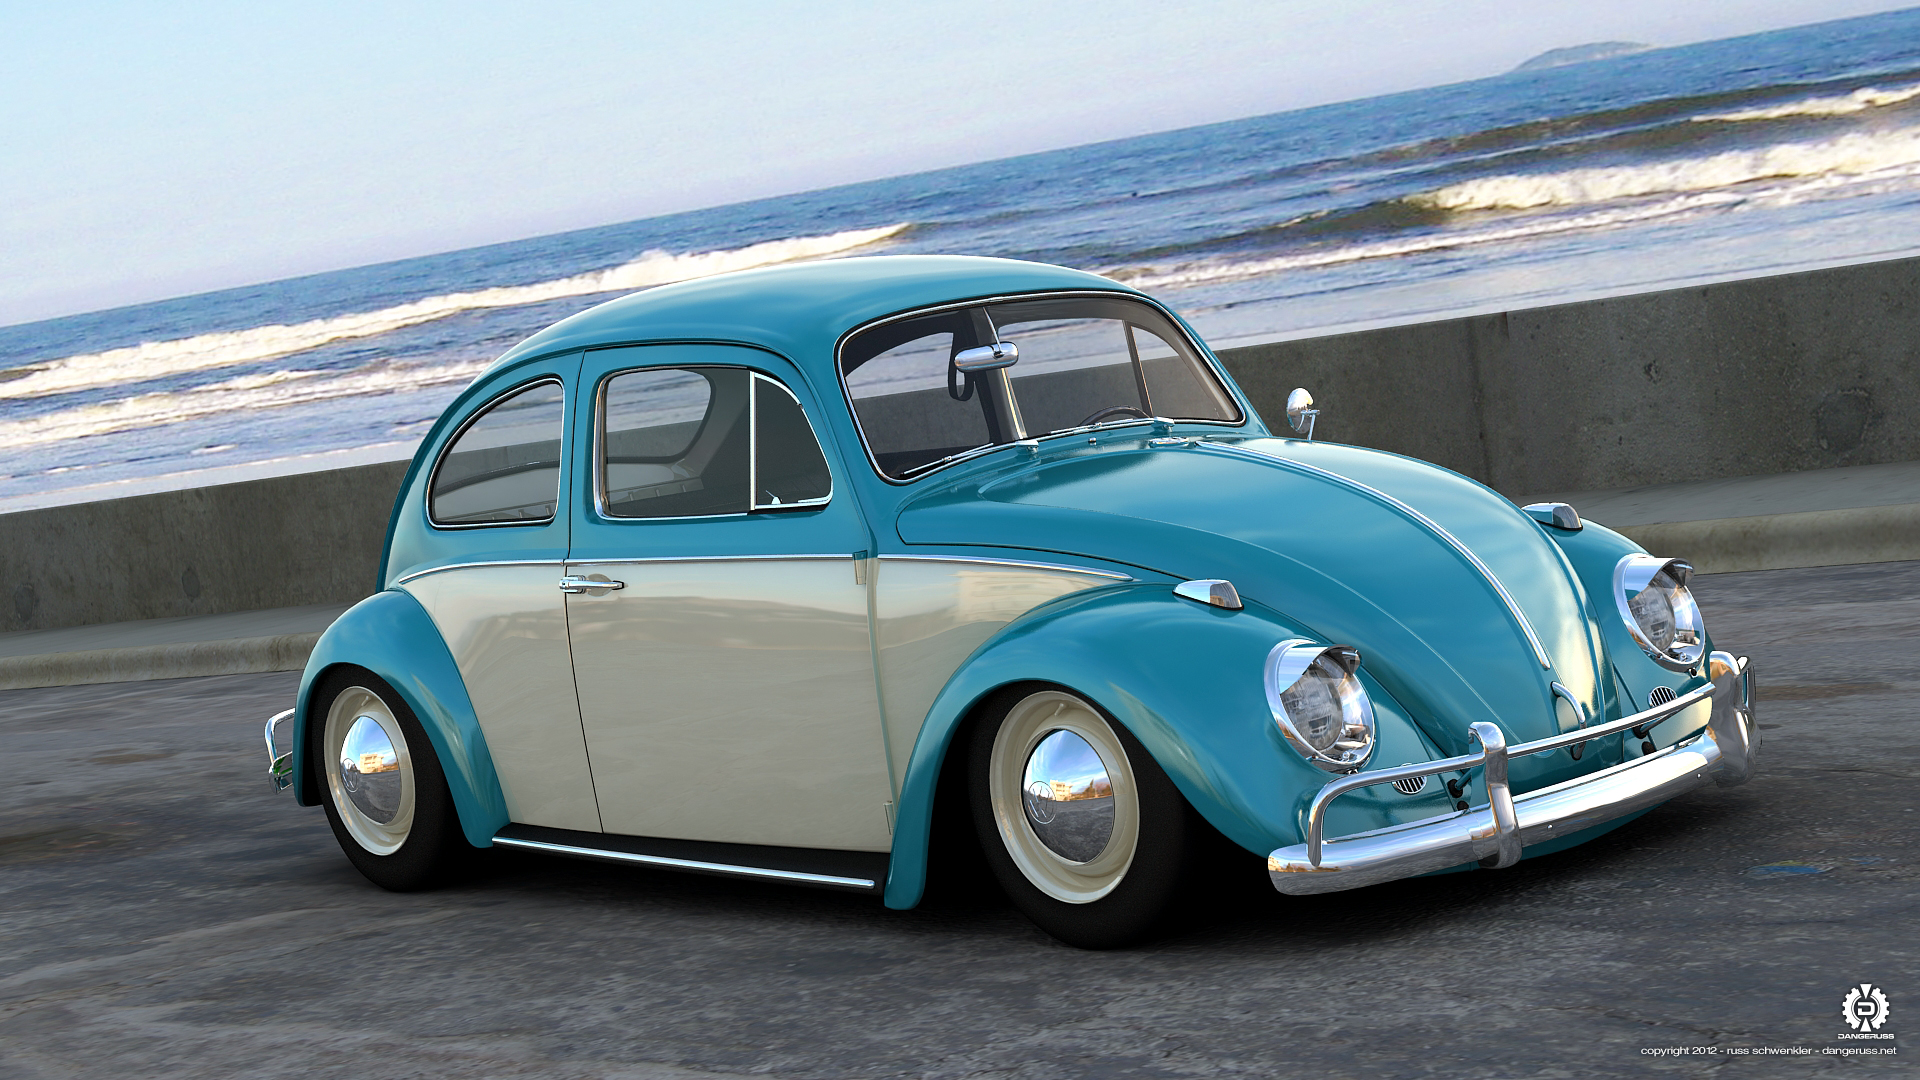 Volkswagen Beetle HD Wallpaper | Background Image | 1920x1080 | ID:407272 - Wallpaper Abyss